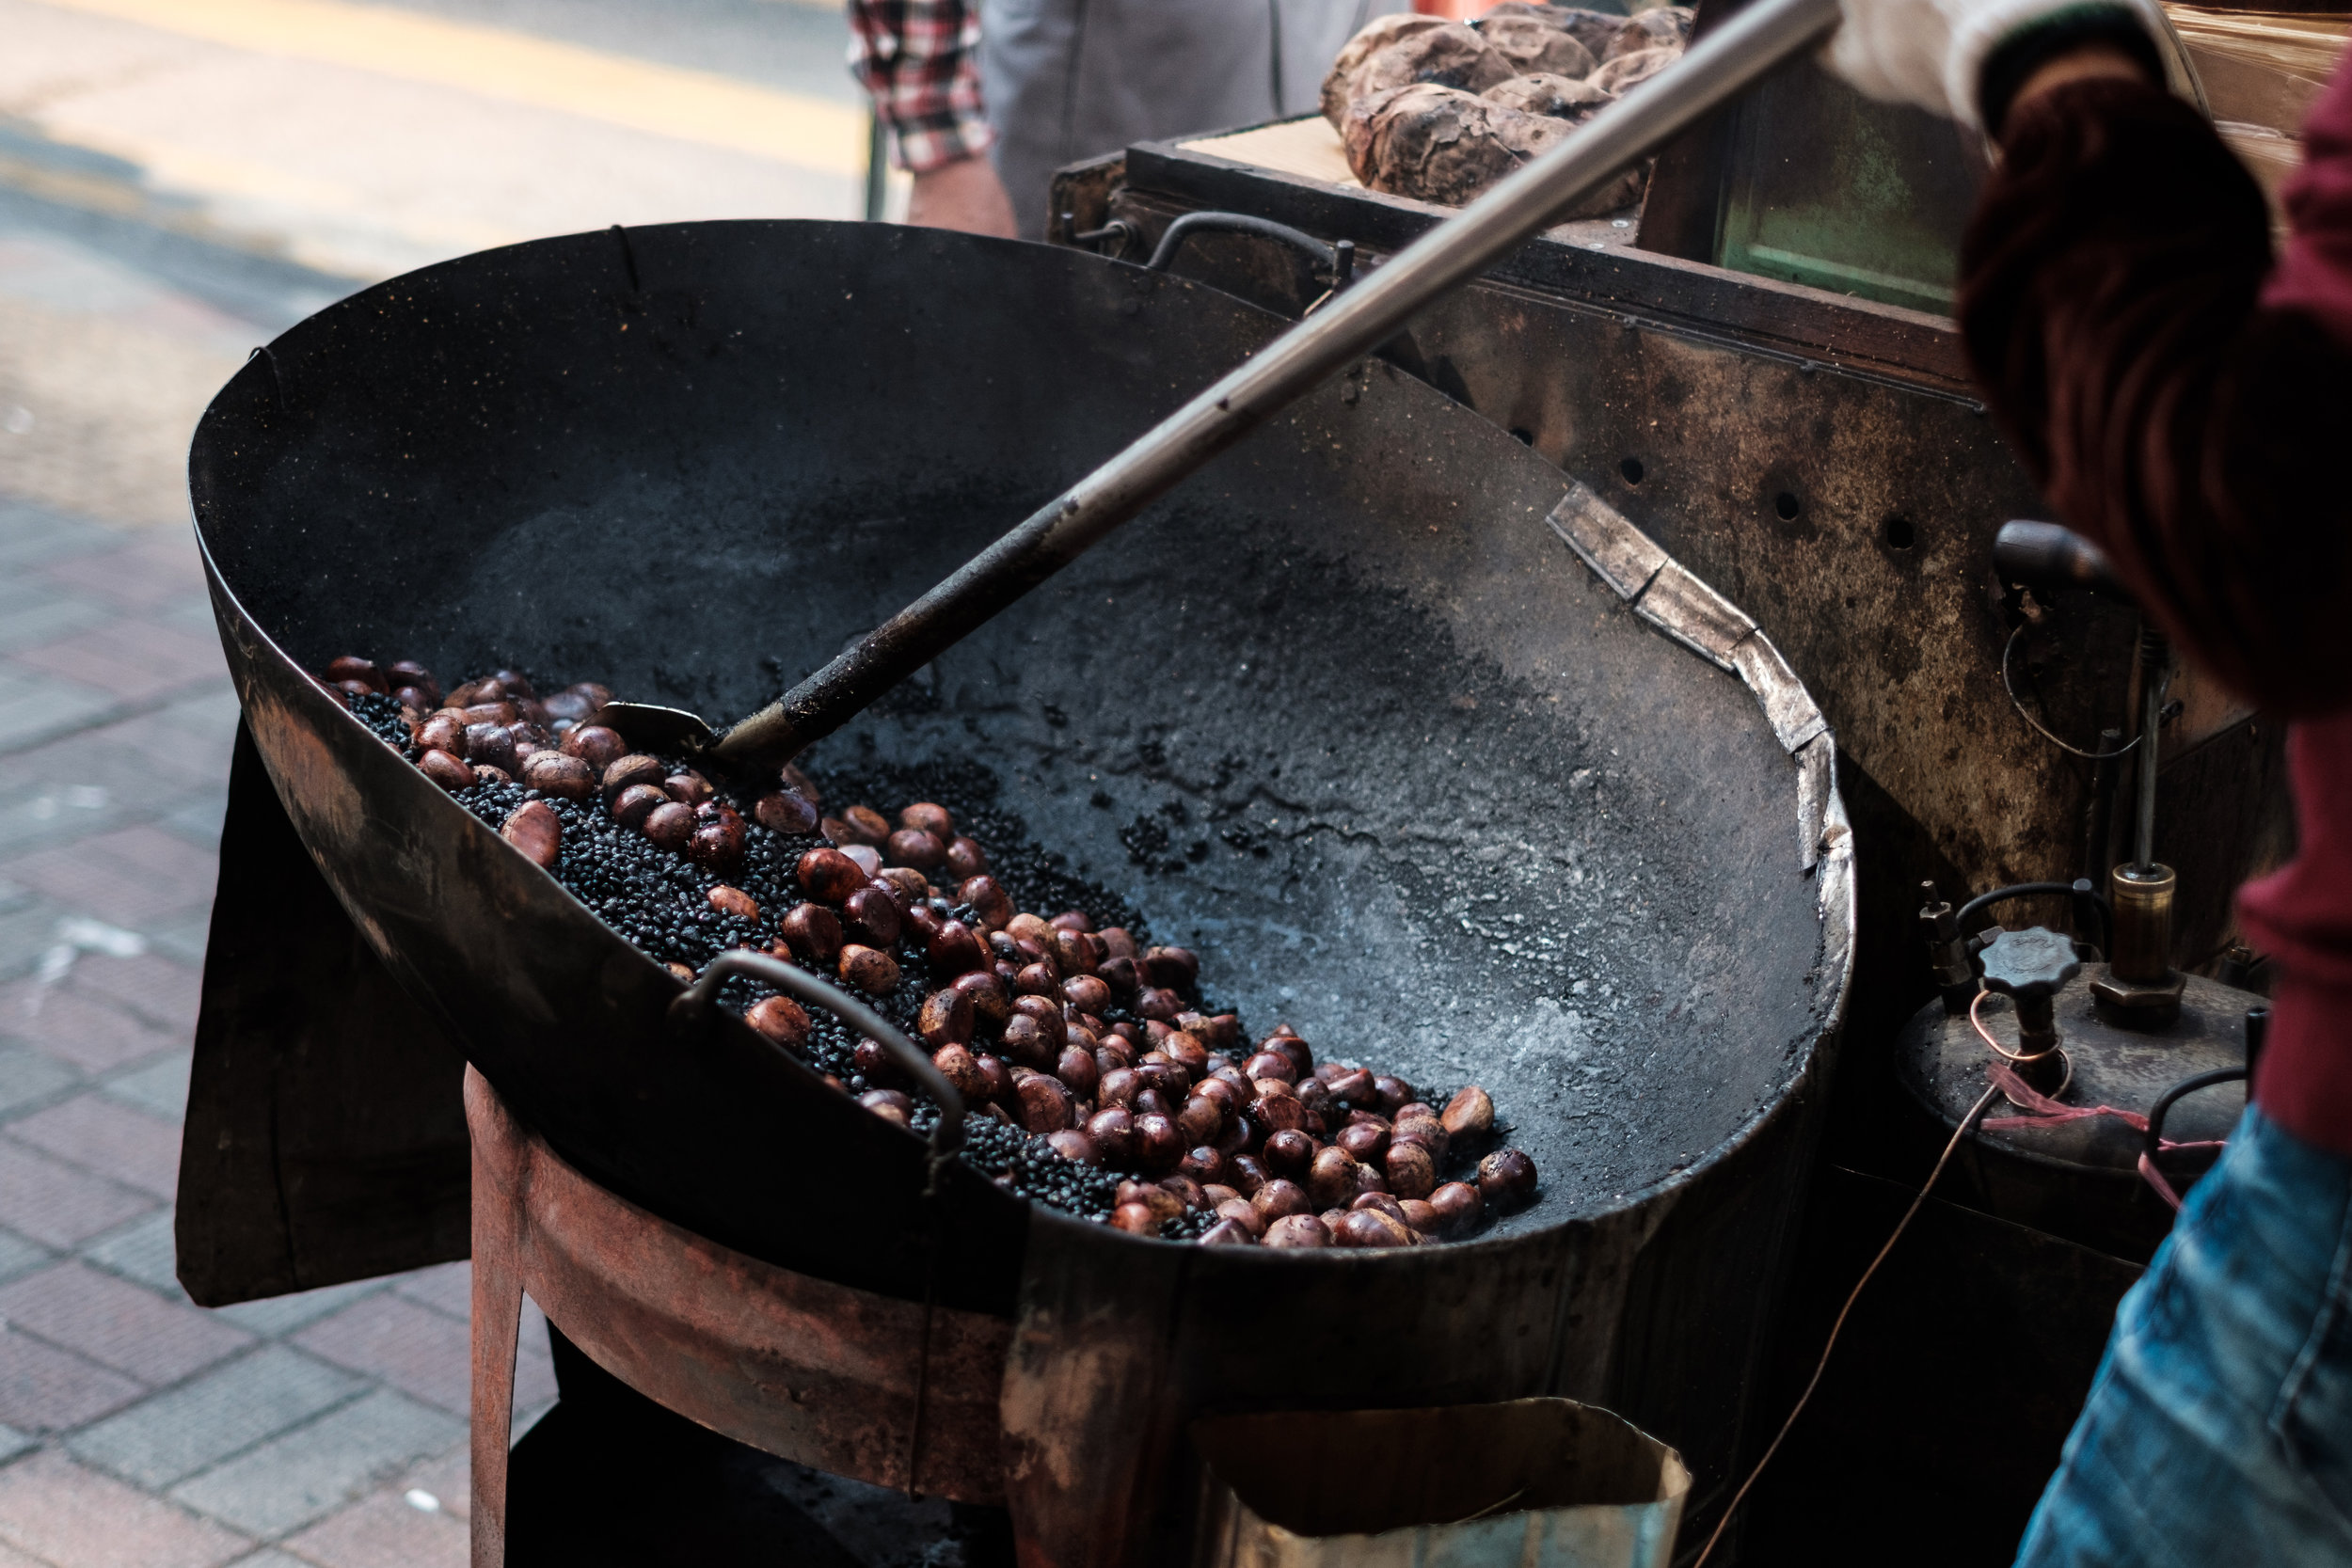 Roasted Nuts for sale by a food vendor in Causeway Bay, Hong Kong